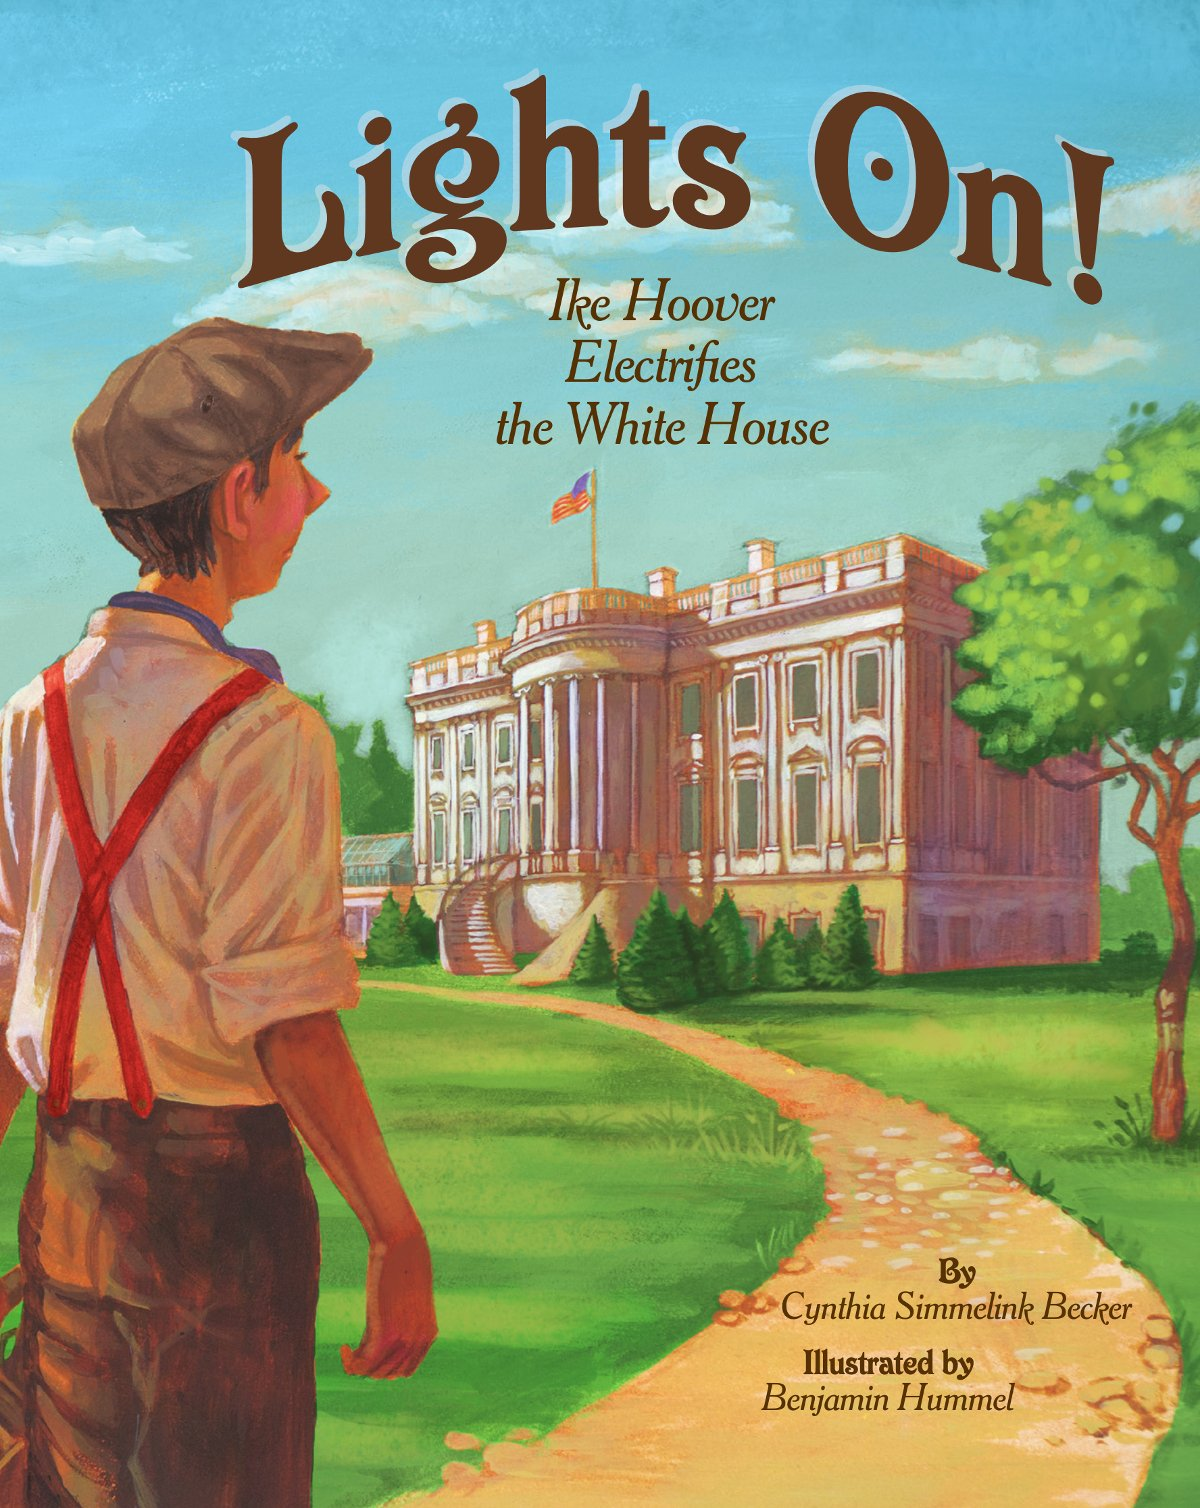 Lights On! Ike Hoover Electrifies the White House